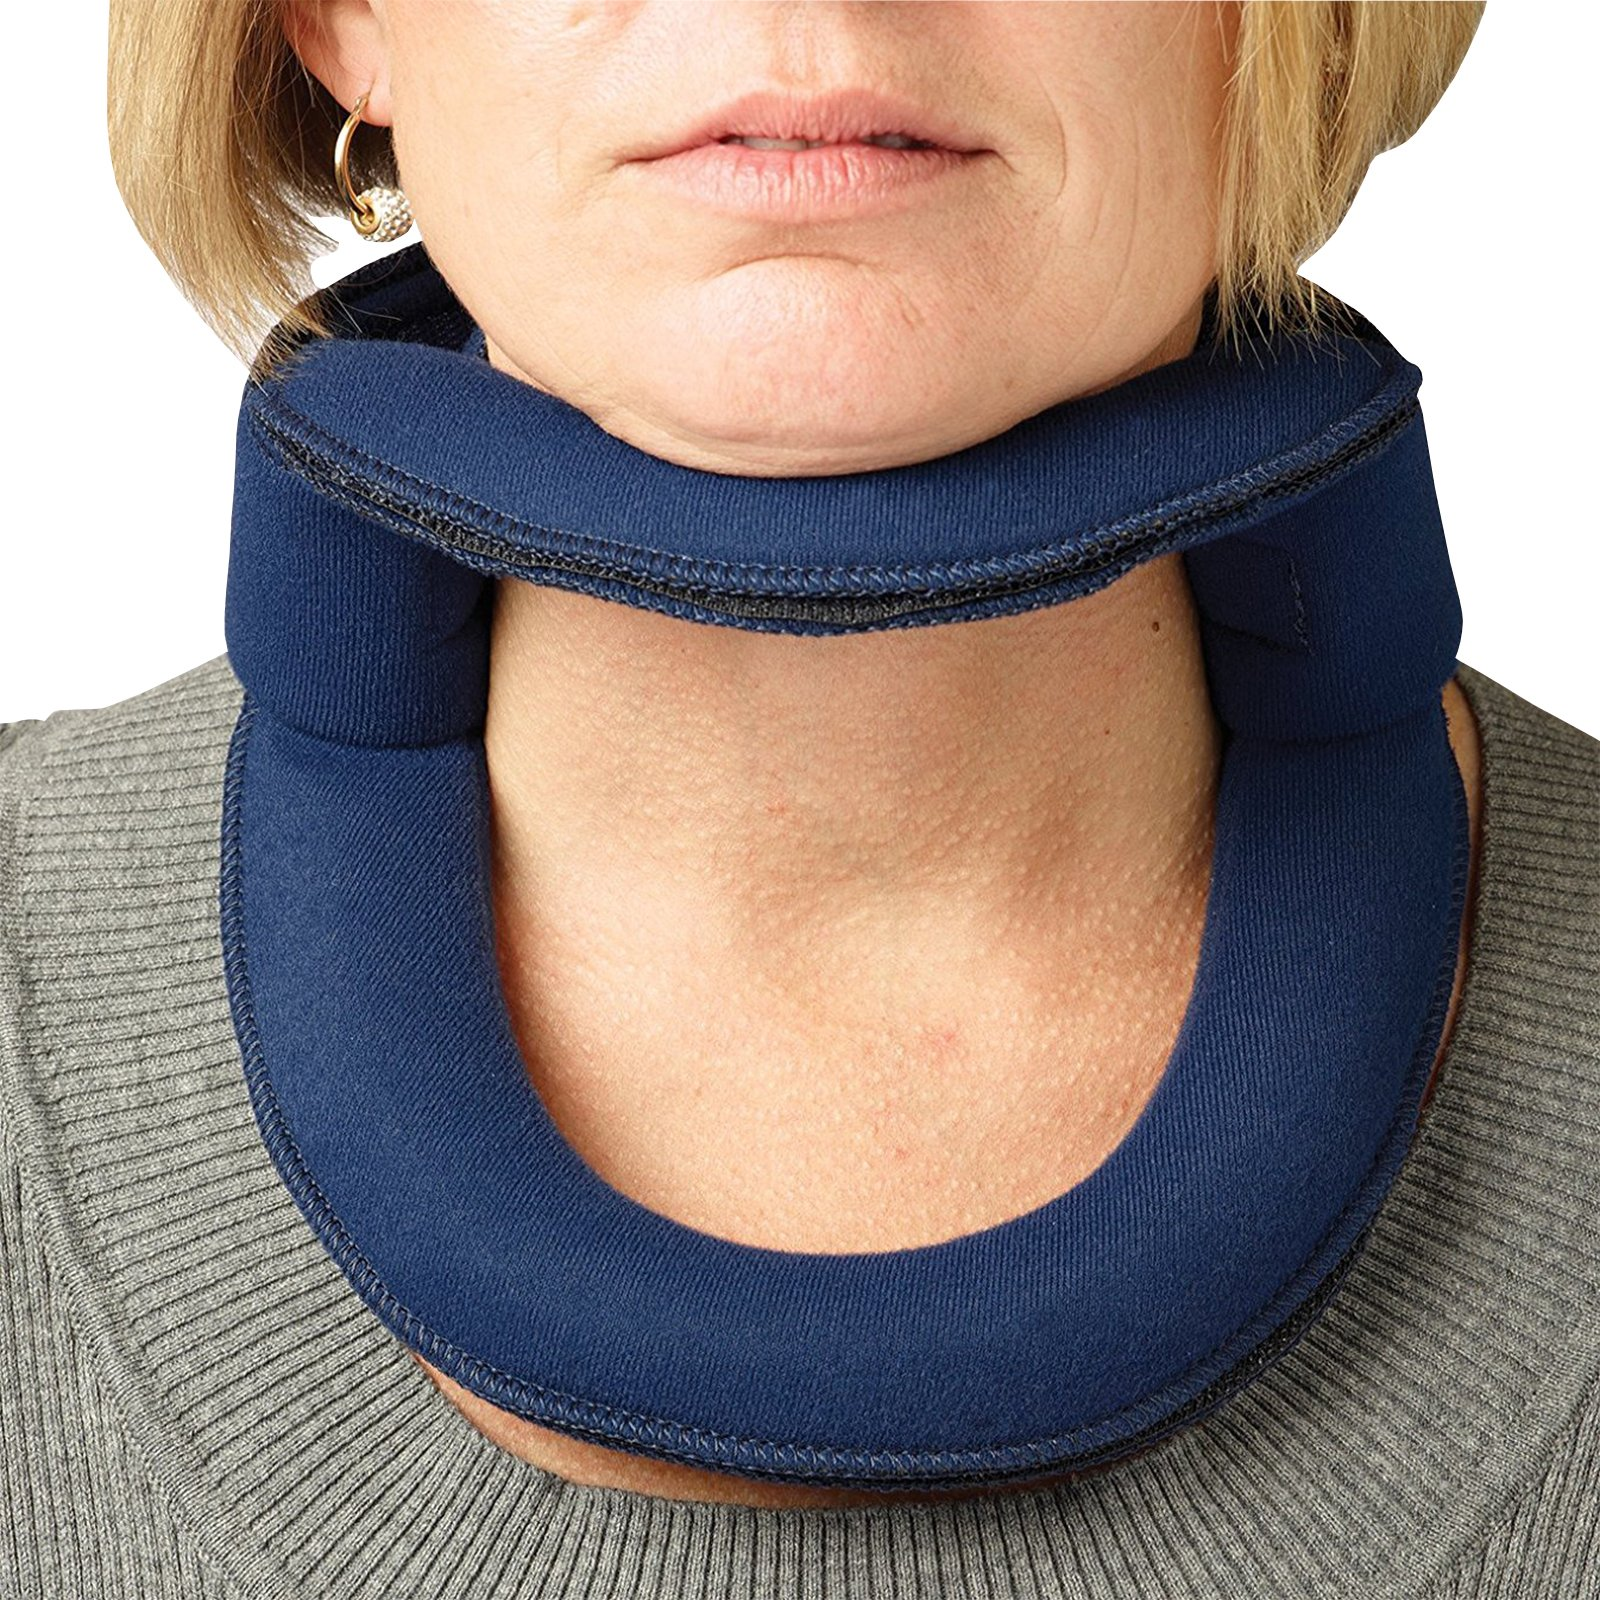 Rolyan Adjustable Frame Cervical Collar, Size Small, Soft Neck Brace Fits Neck Circumferences 12'' - 14'', Wire Frame, Bendable Collar Stabilizes Neck After Head and Neck Injuries